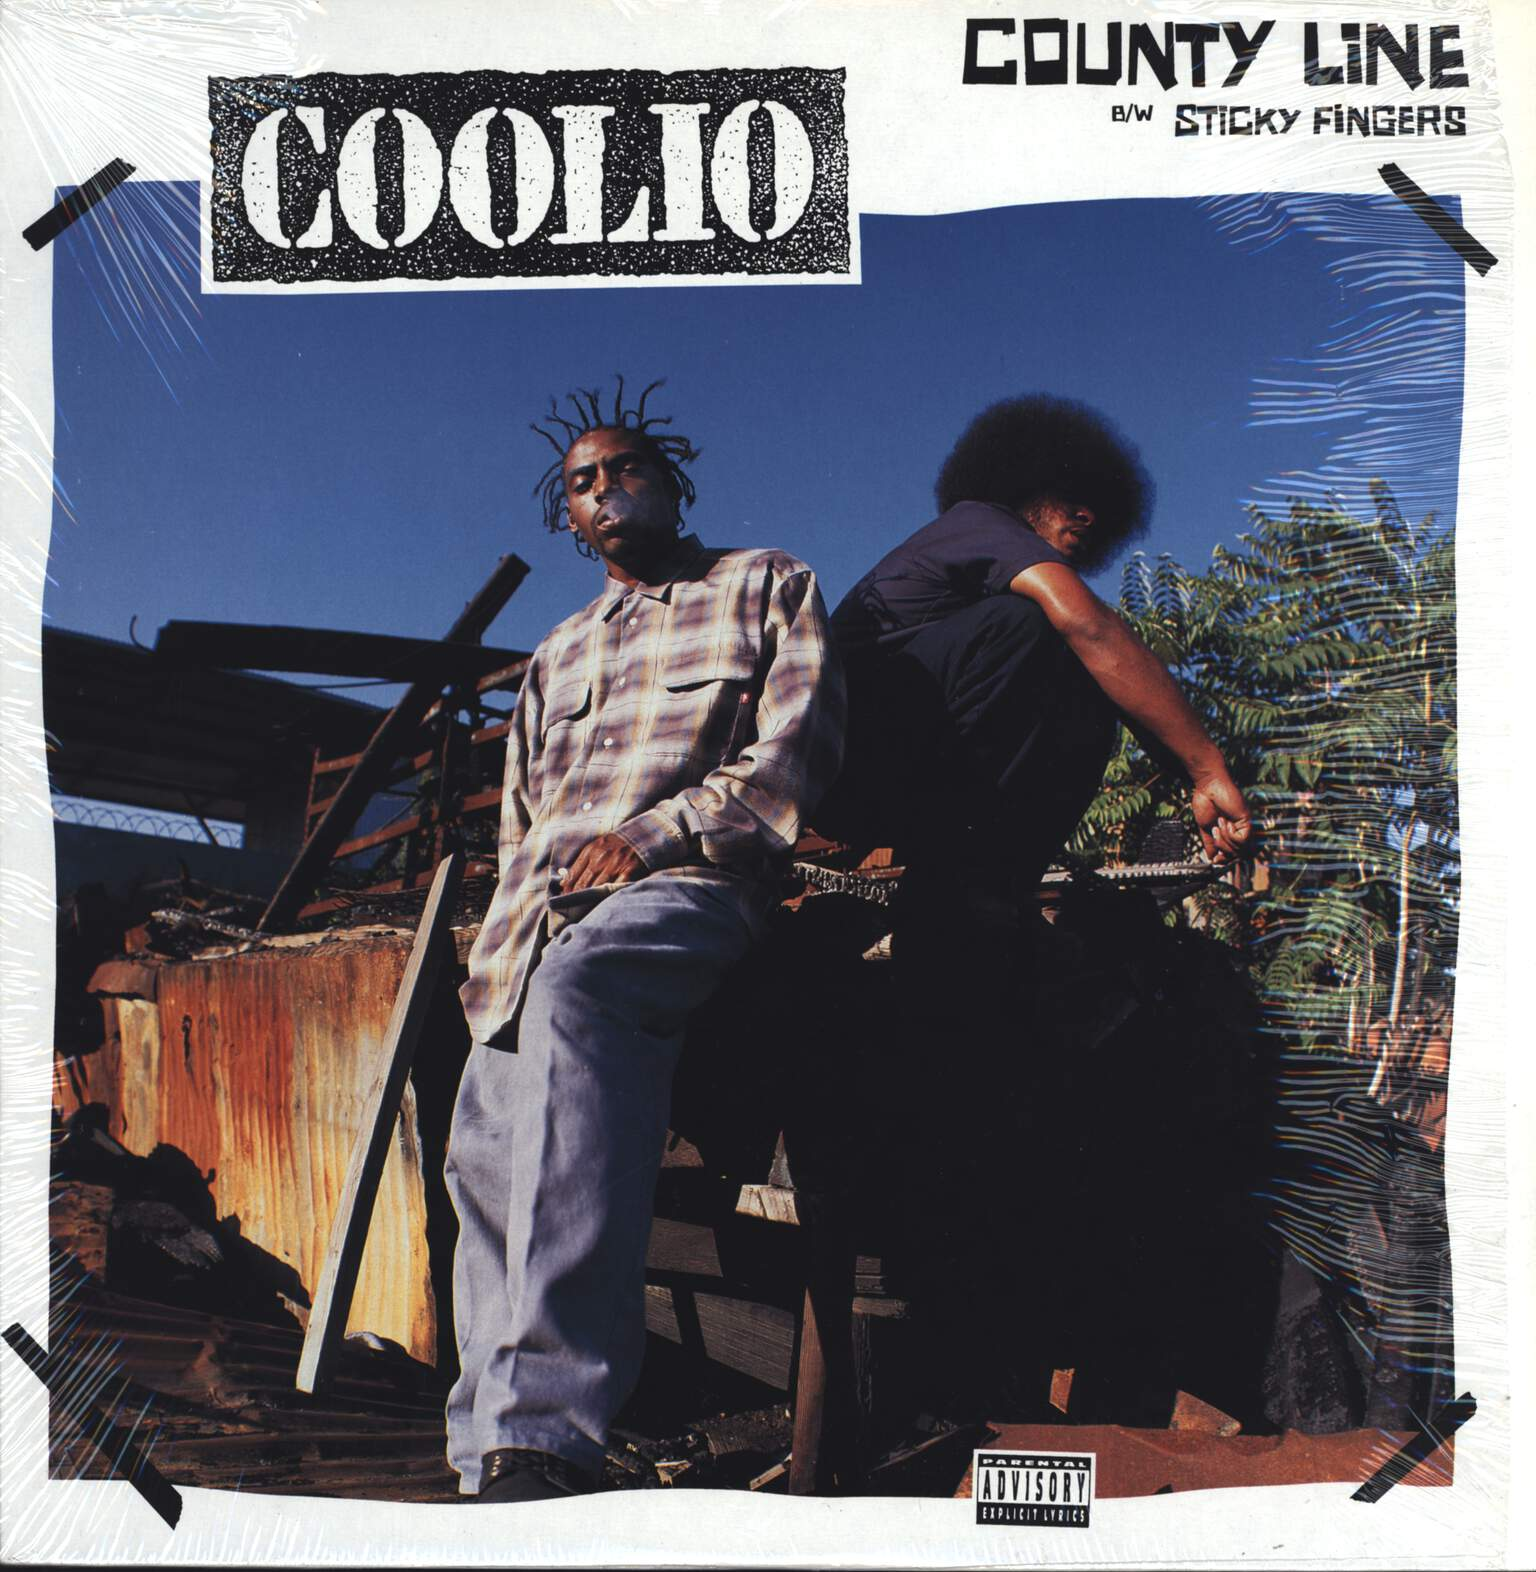 "Coolio: County Line / Sticky Fingers, 12"" Maxi Single (Vinyl)"